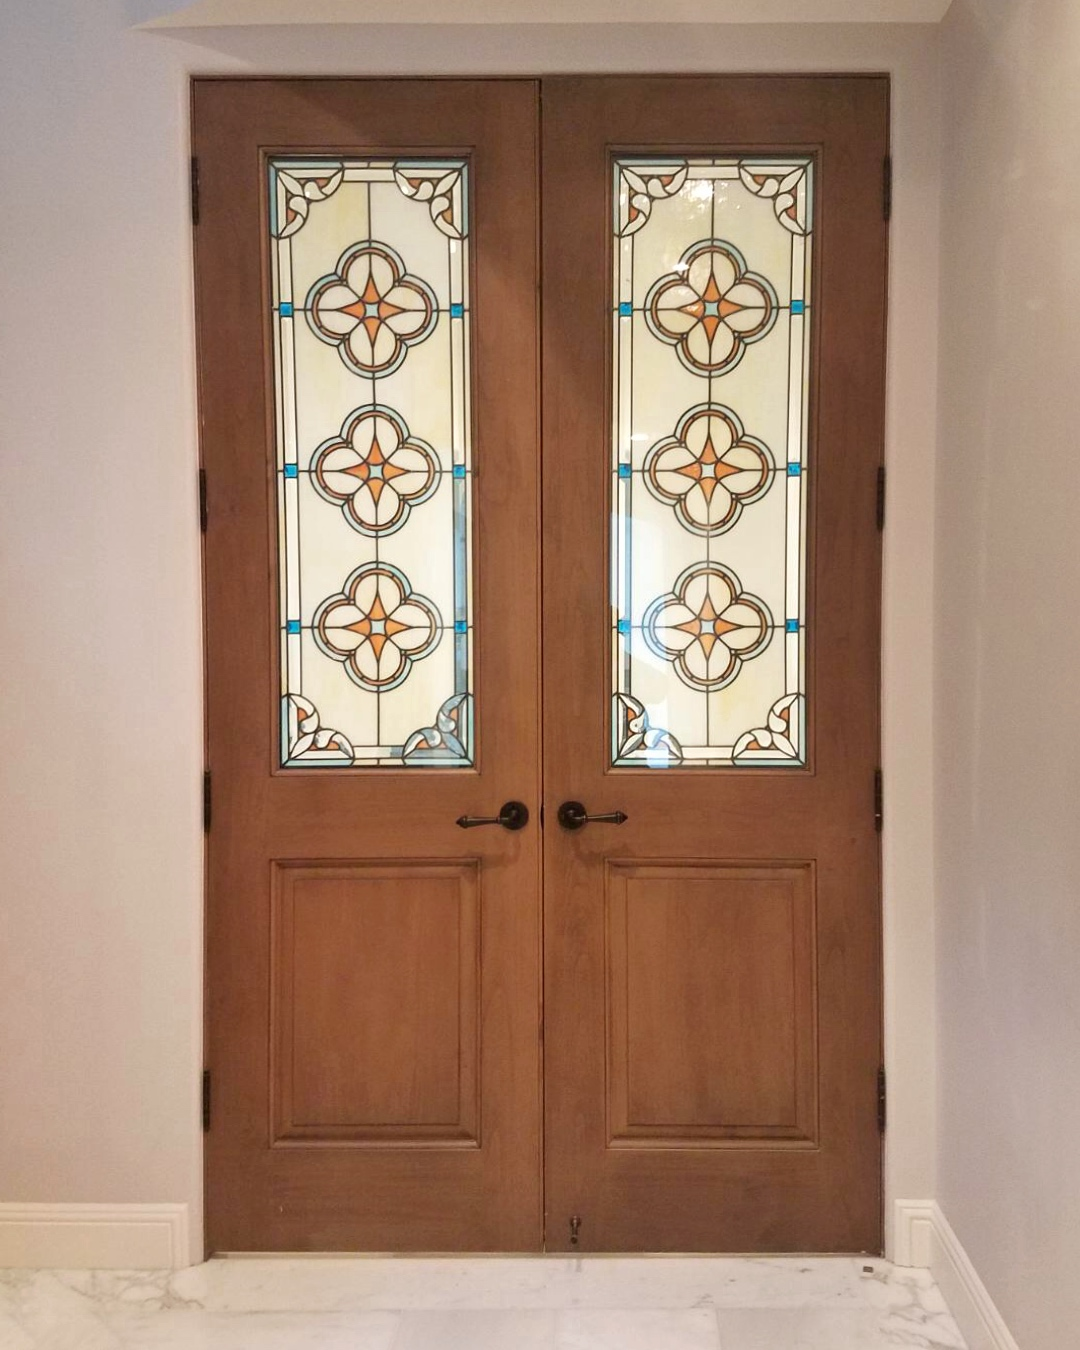 spanish star design quatrefoil french doors leaded glass stained glass insulated unit art glass custom beveled stained glass legacy glass studios palo alto california home renovation.jpg